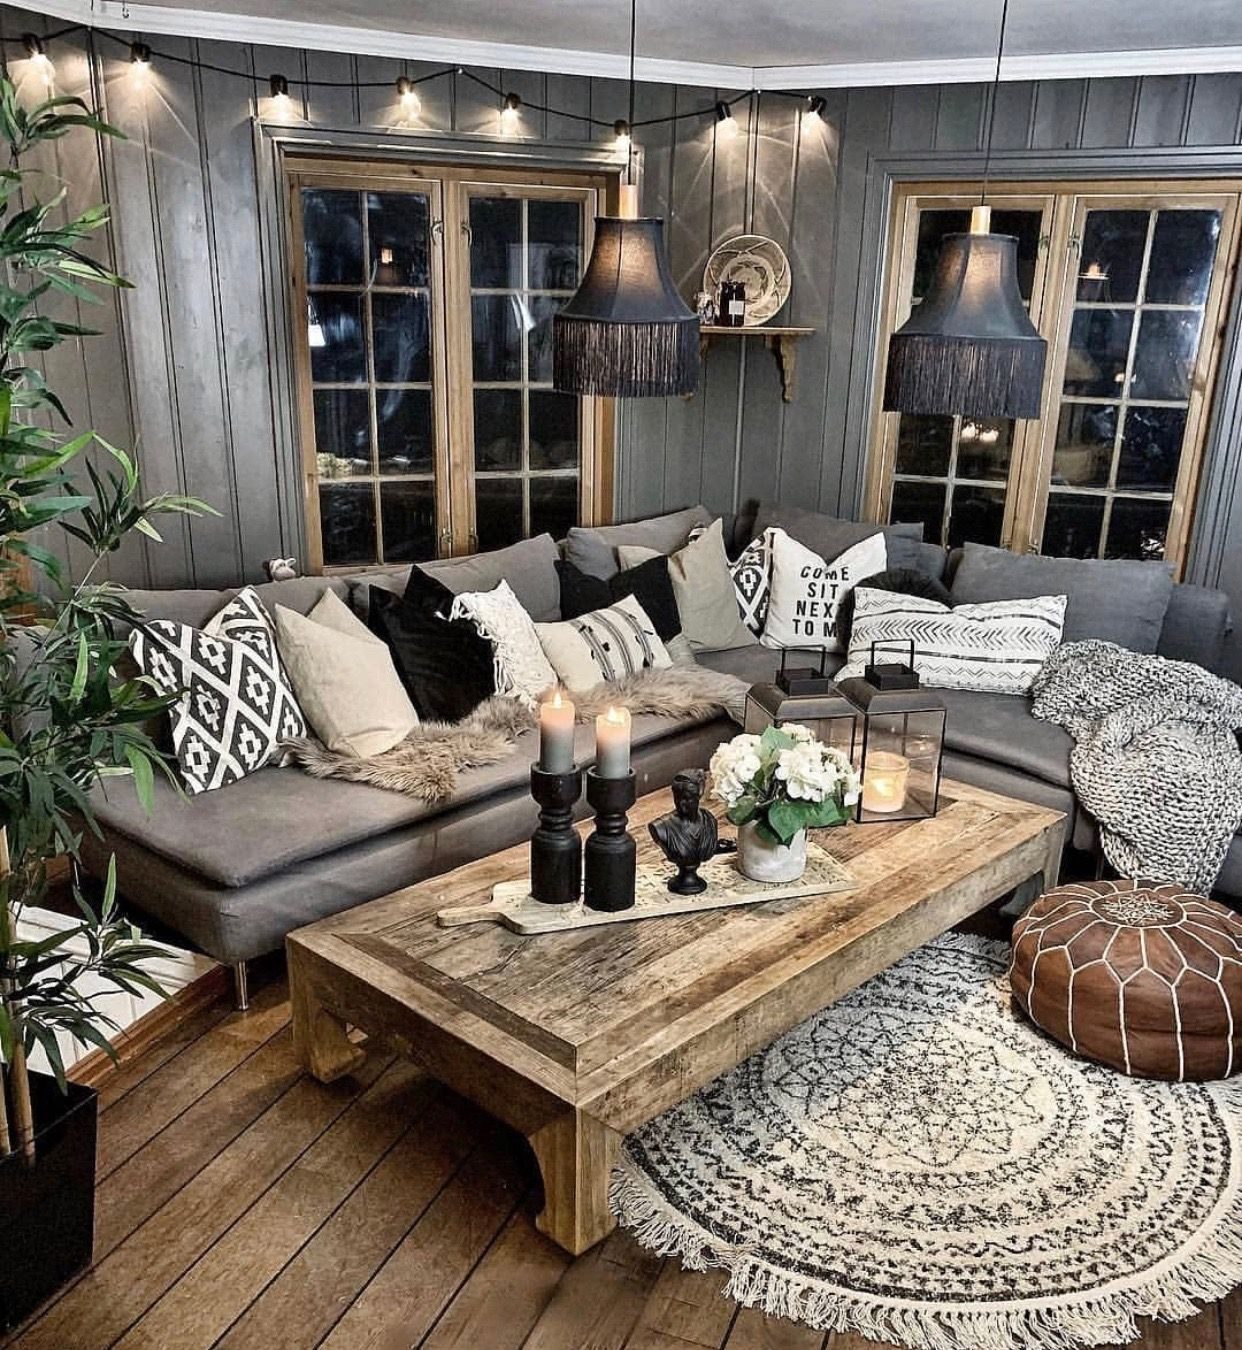 The sectional with pillows (not the colors) and the coffee table are cozy and a relaxing area made for a living room.